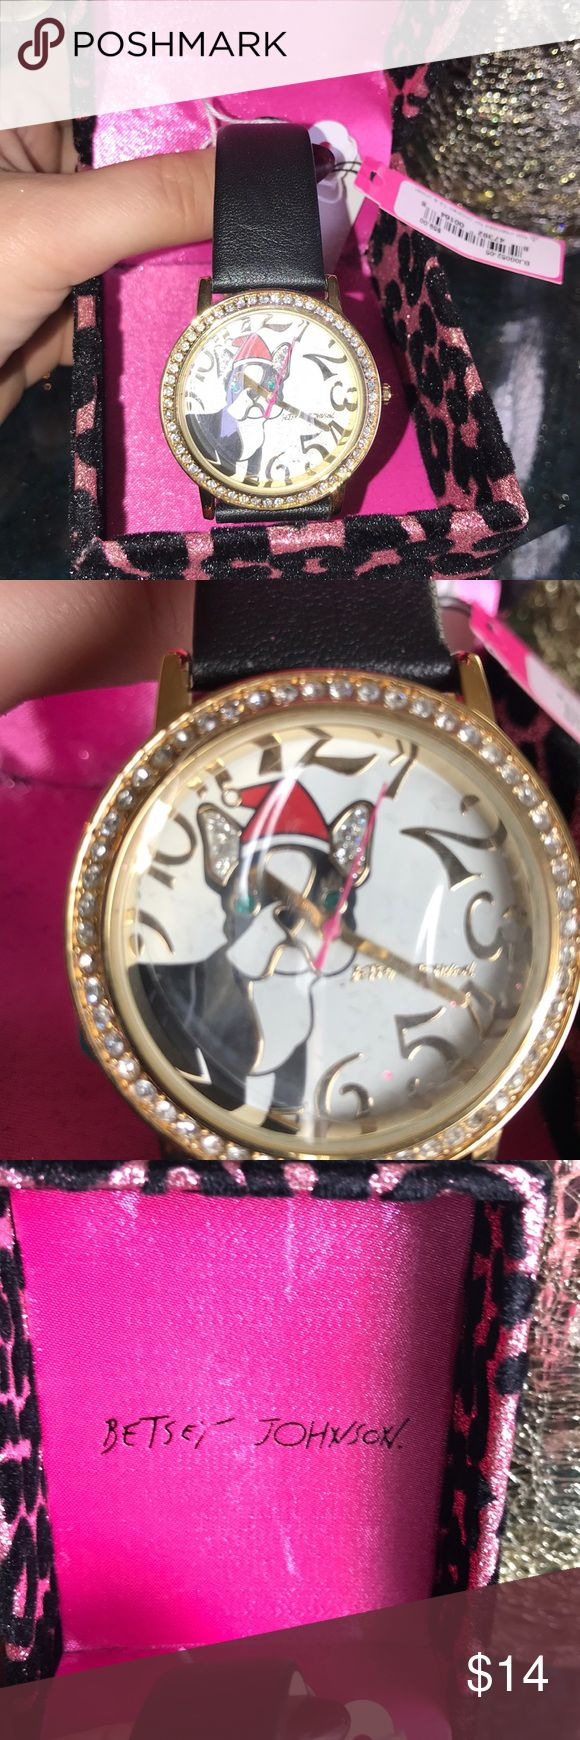 Betsey Johnson frenchy Christmas watch New Betsey Johnson new French bulldog Christmas watch.. NOTE IT DOES NEED NEW BATTERY Betsey Johnson Jewelry